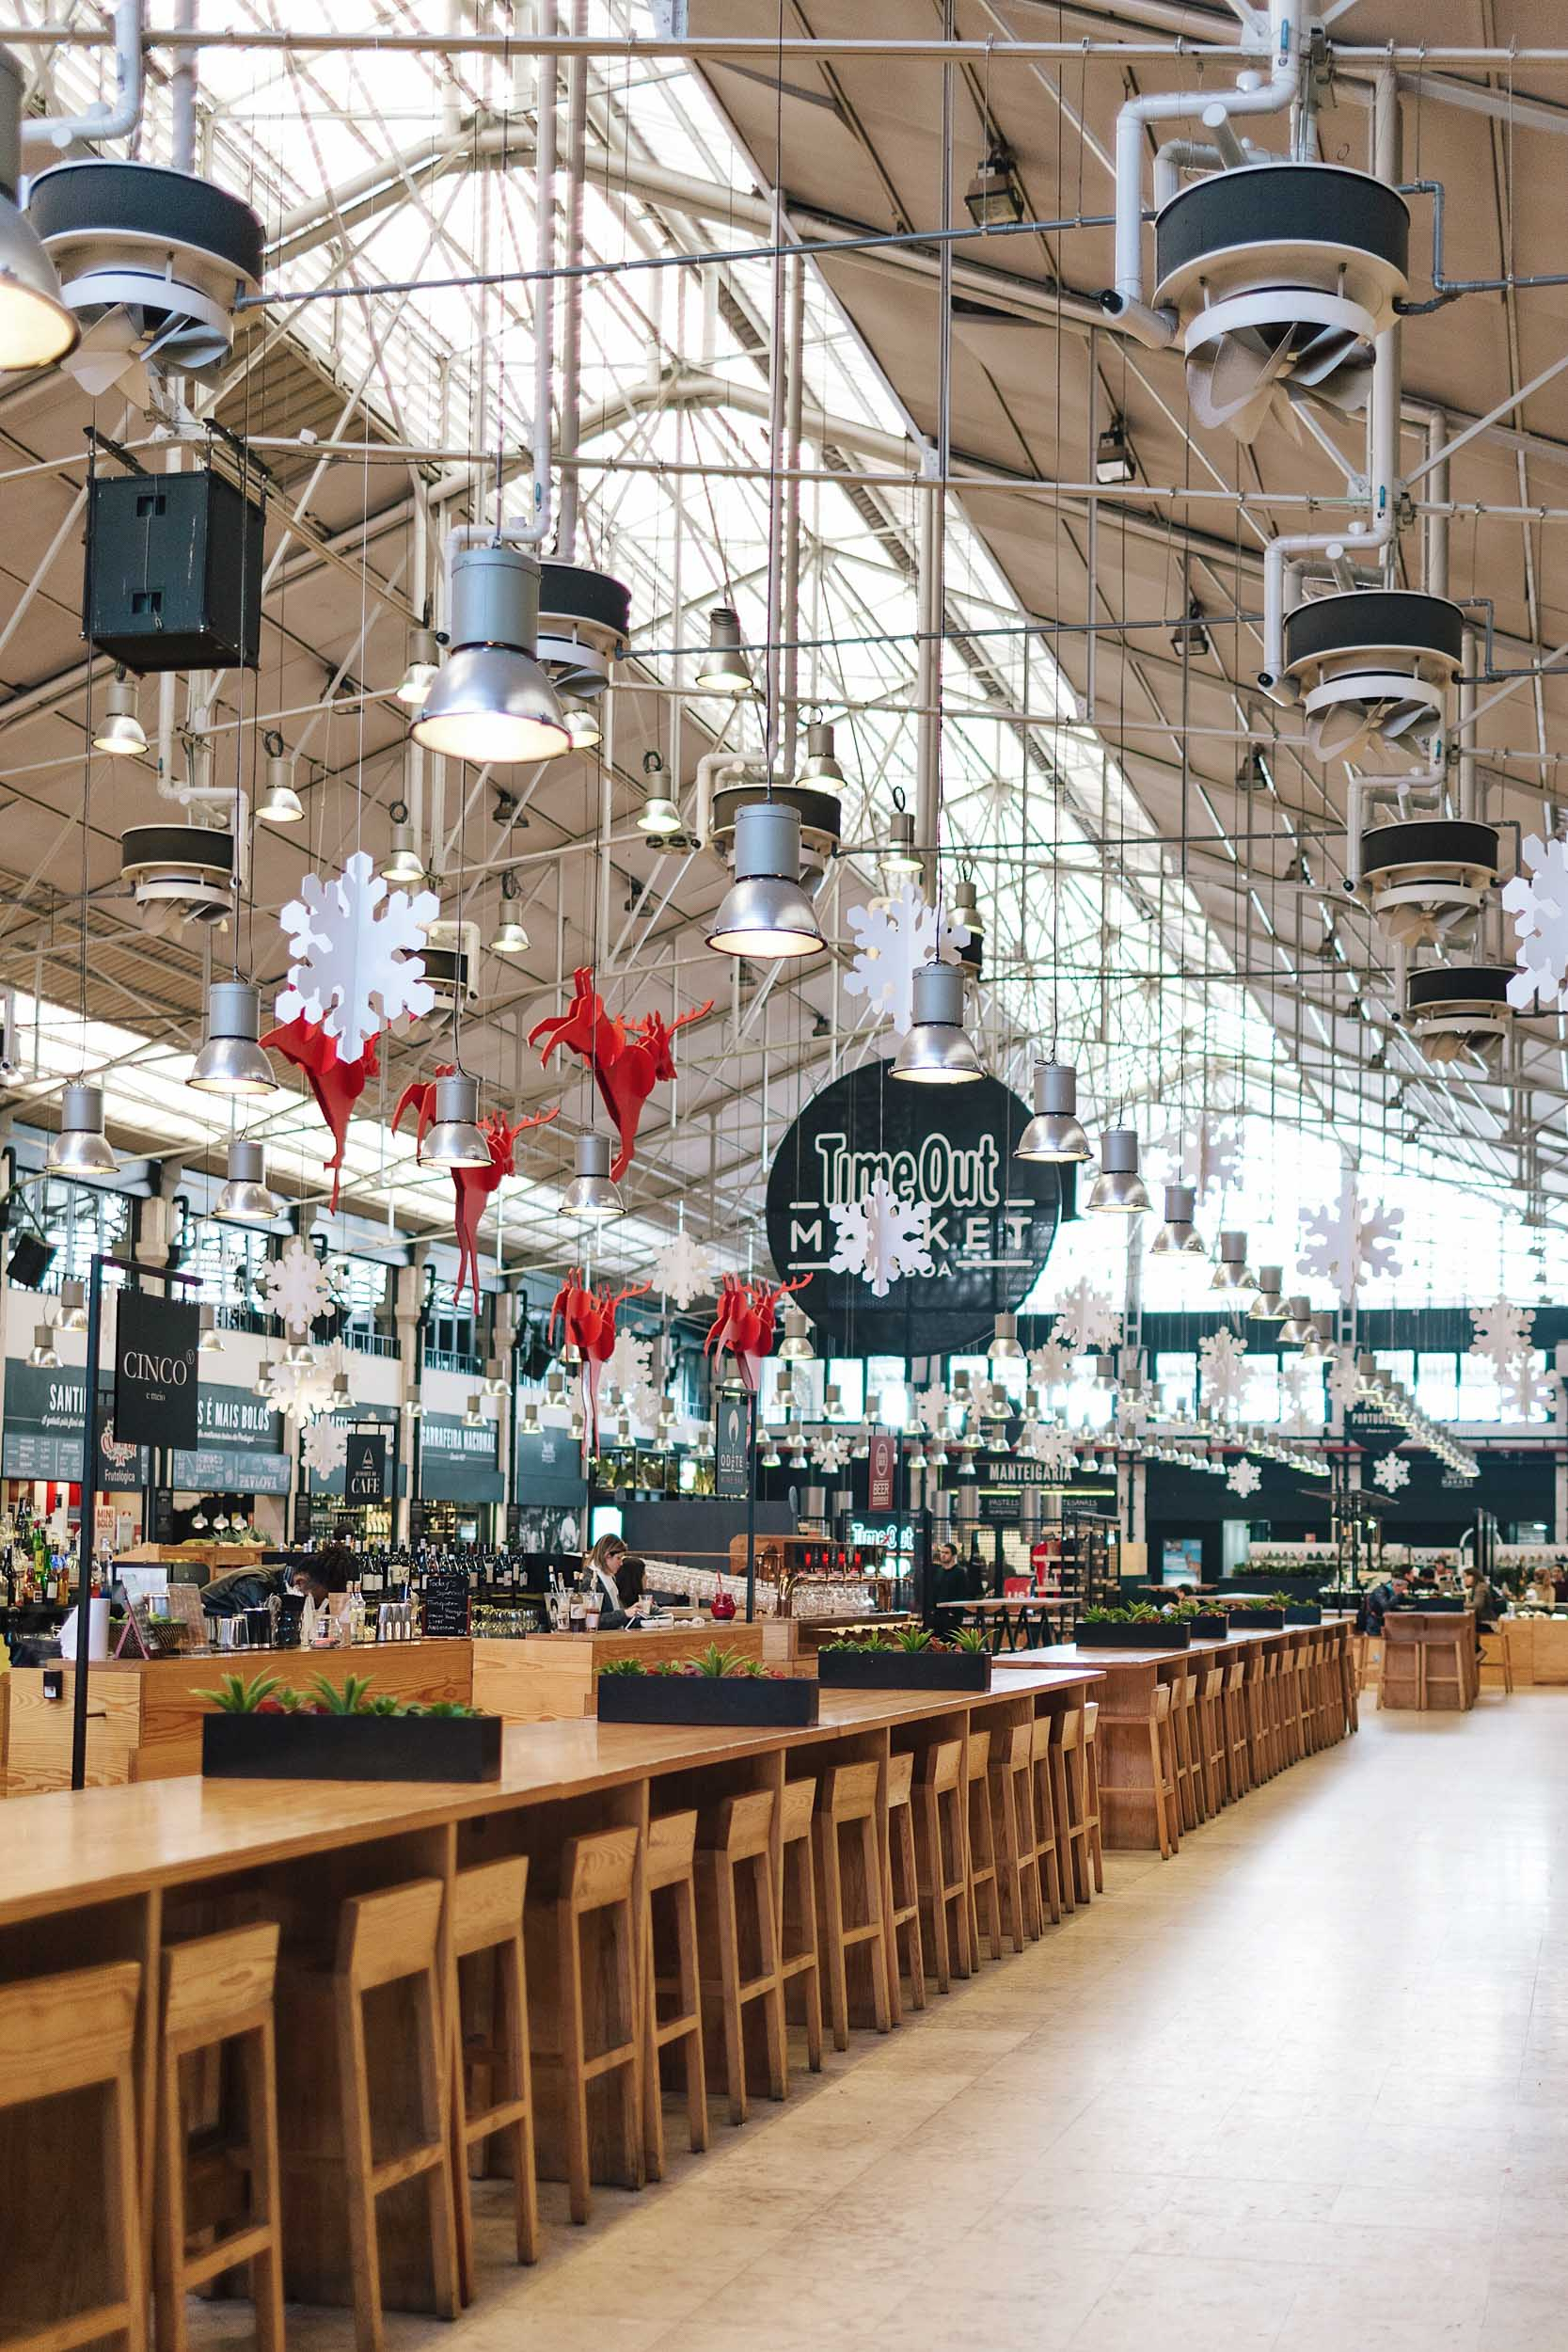 Time Out Market is a food hall and market and is yet another can't miss spot!